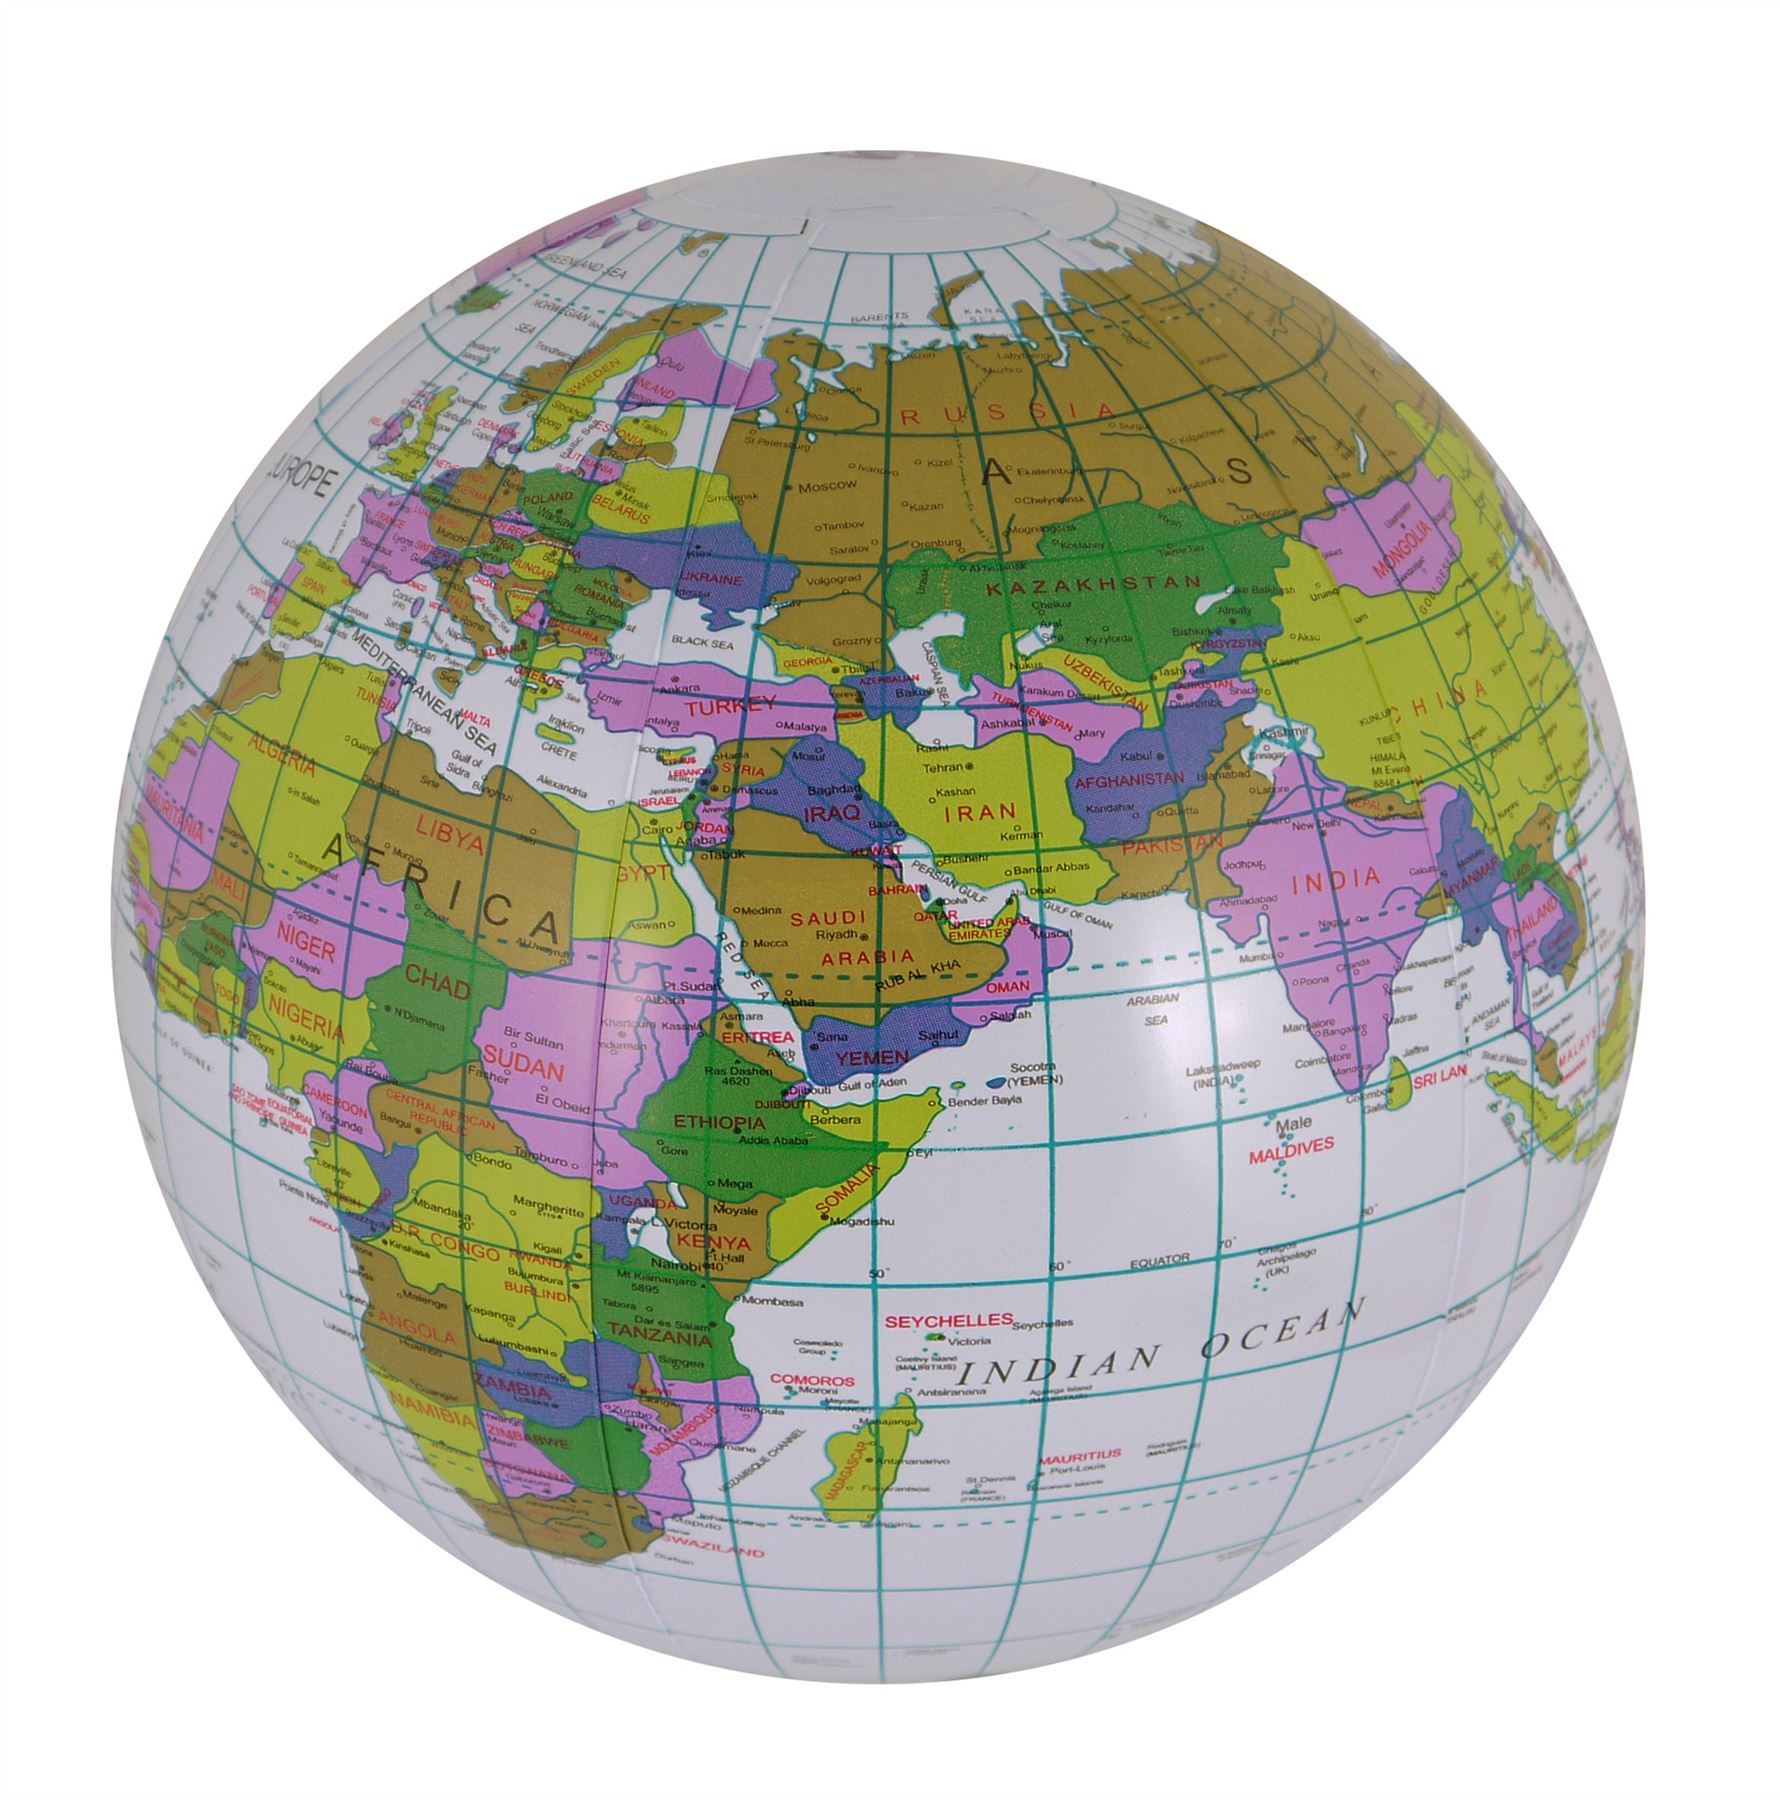 Inflatable globe atlas world map earth educational learn 40cm beach inflatable globe atlas world map earth educational learn 40cm beach ball gumiabroncs Images